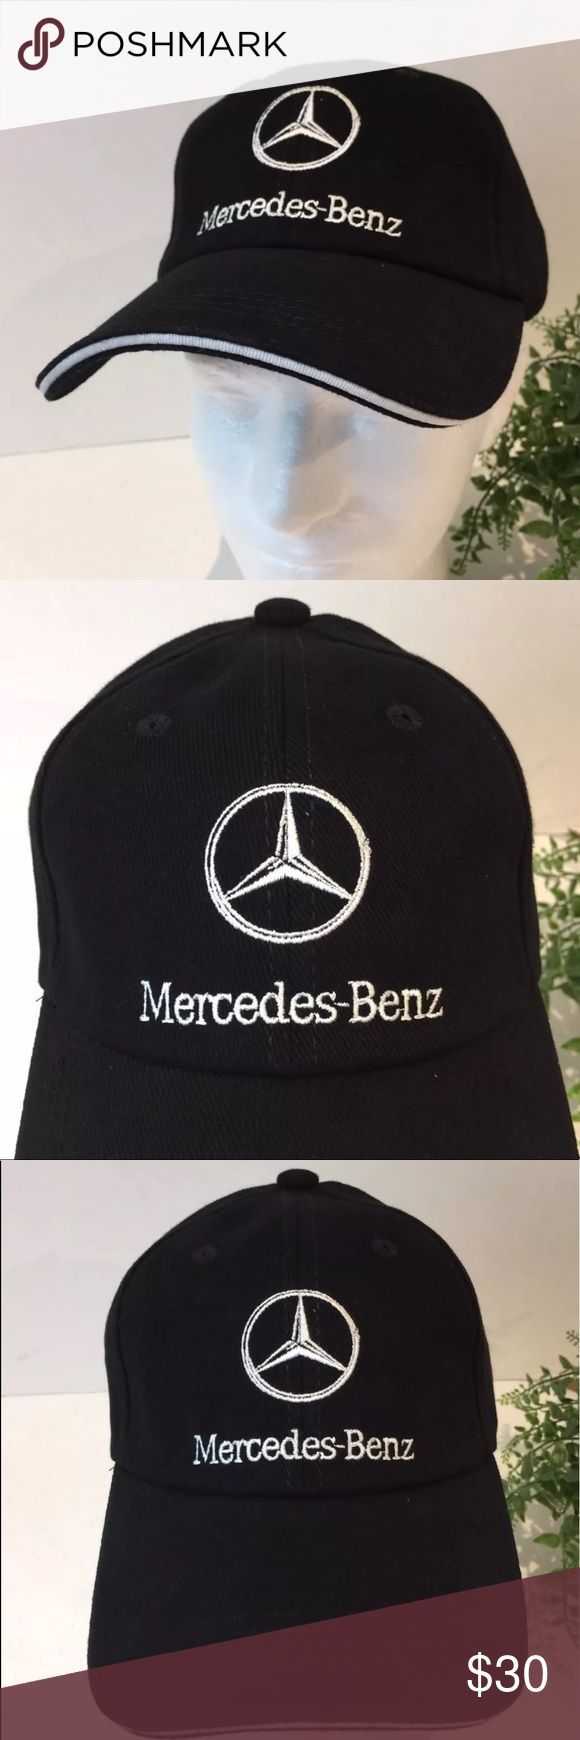 Mercedes Benz Black Hat Logo Adjustable Strap NWOT Mercedes Benz of South Atlanta Embroidered Logo Black Hat Adjustable Strap New Without Tags (NWOT).  Comes from a smoke free pet free environment. Will be shipped in a box. Every effort is made to ensure the hat does not get crushed. unbranded Accessories Hats